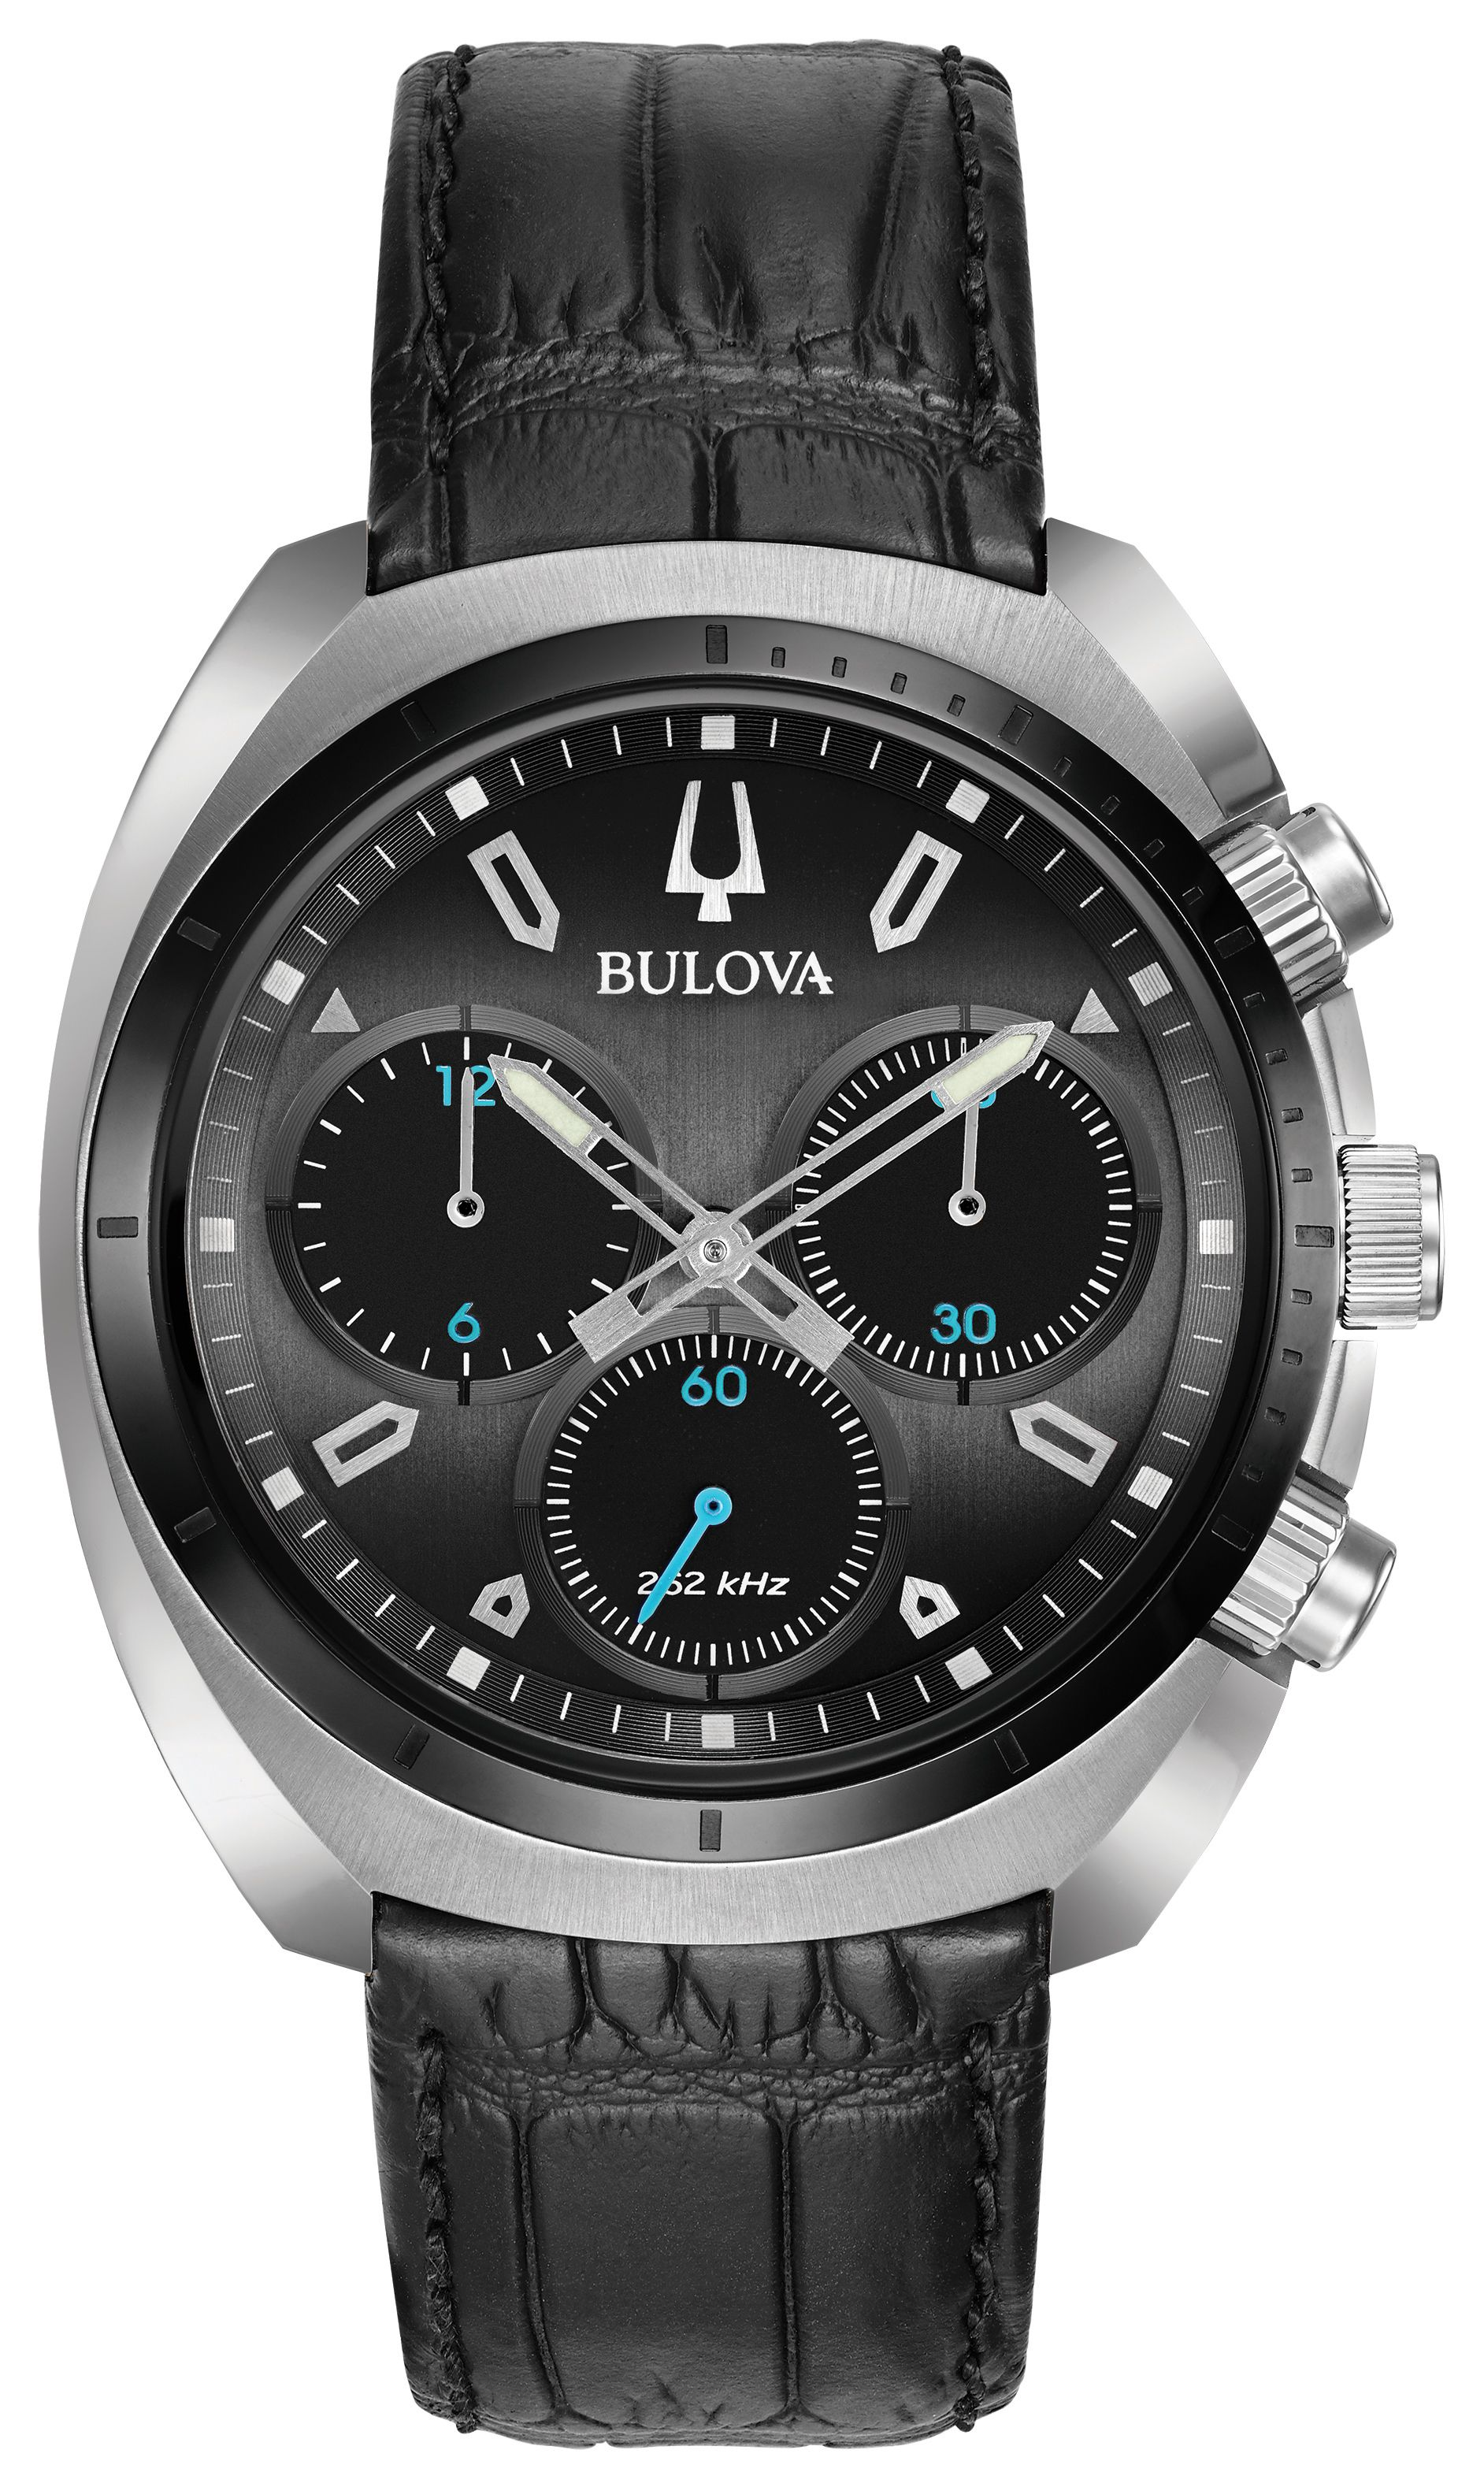 be8d776d2 From the Bulova CURV watch collection, the world's first curved chronograph  movement, featuring a five-hand chronograph in a titanium and stainless  steel ...